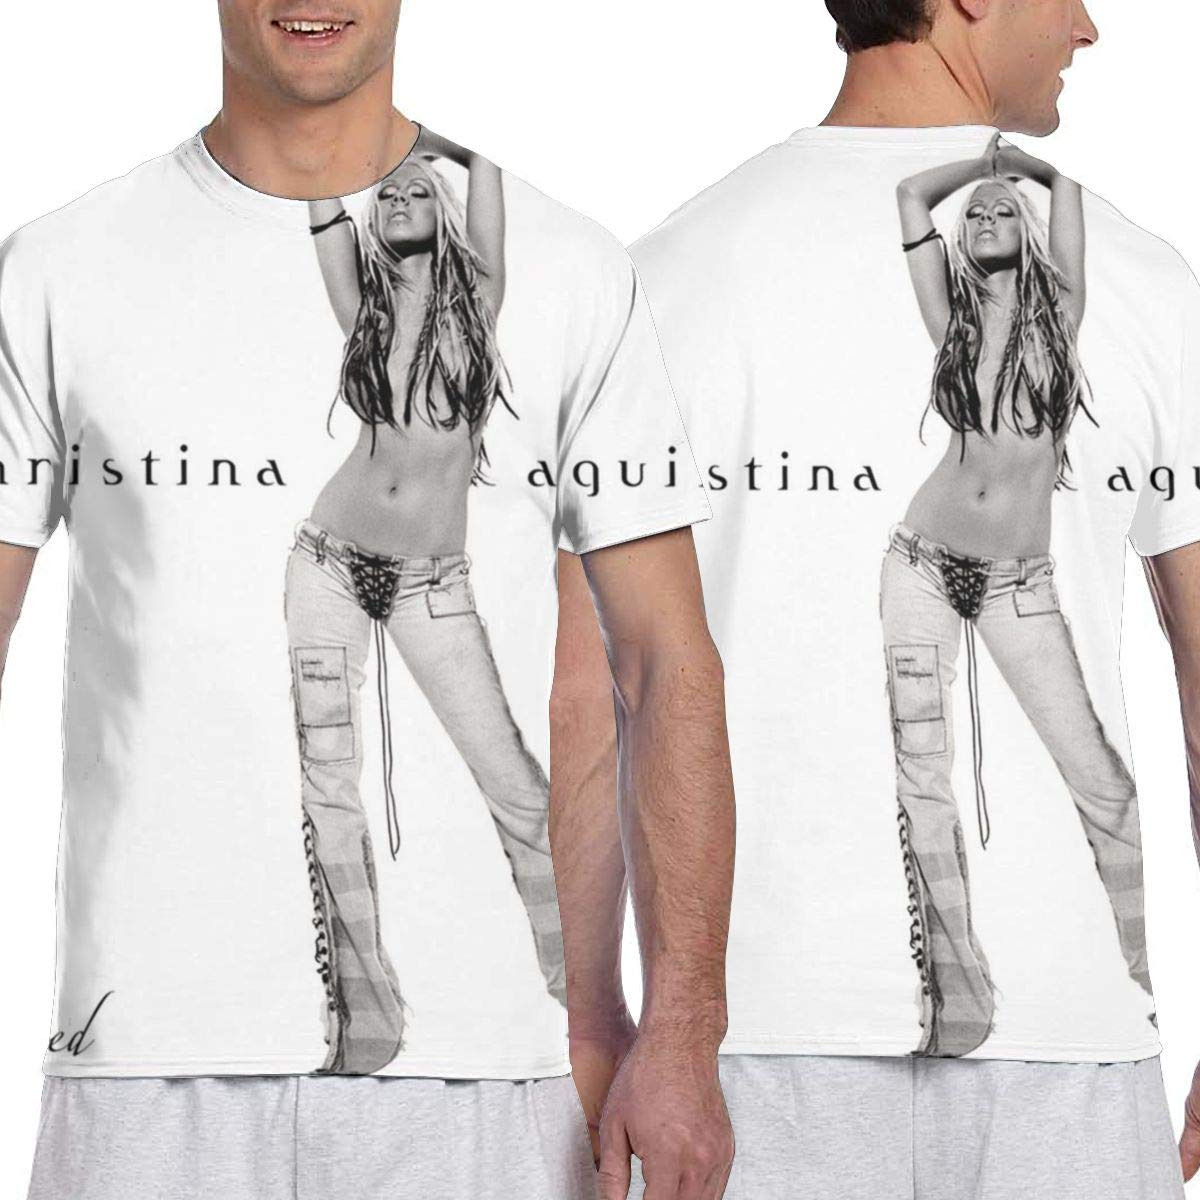 LANDONL Mens Christina Aguilera Stripped 3D Printed Short Sleeve Tshirt Black